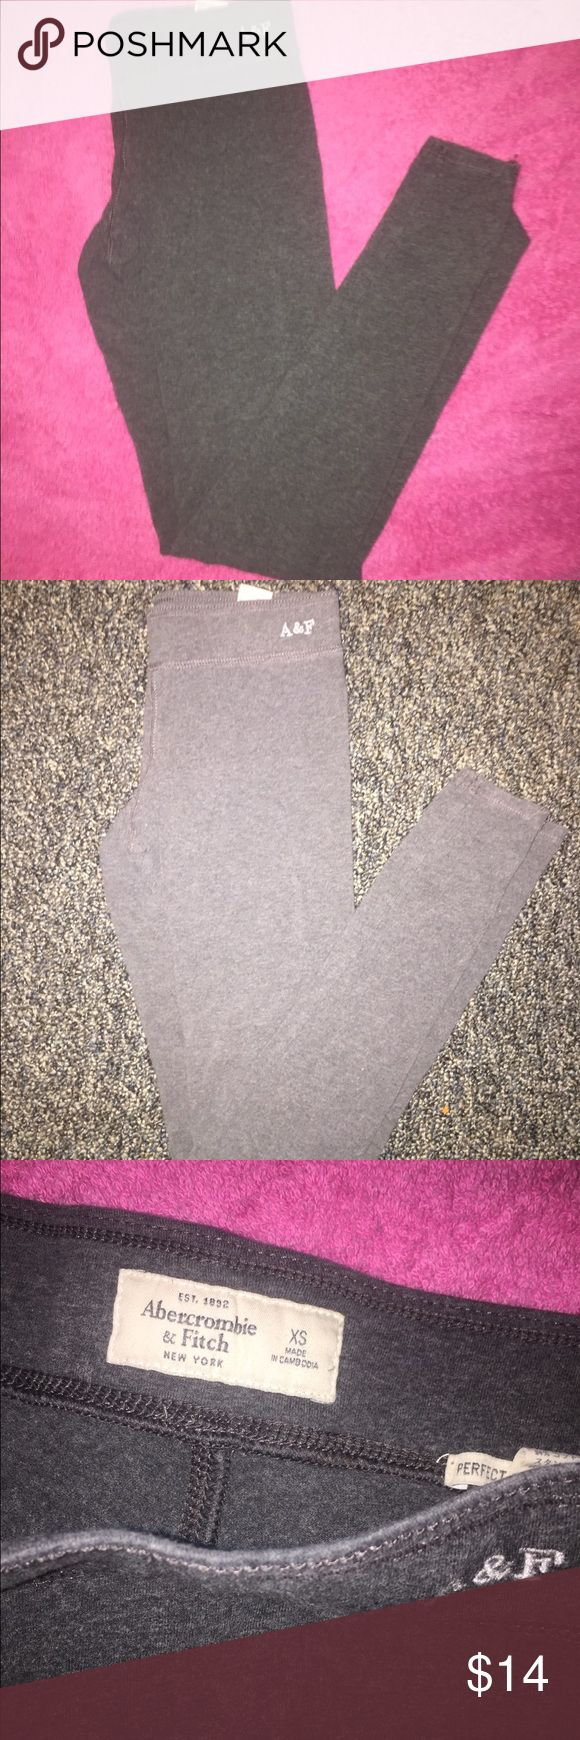 A&F Leggings Abercrombie and fitch leggings - full length - size XS - great condition ! Abercrombie & Fitch Pants Leggings